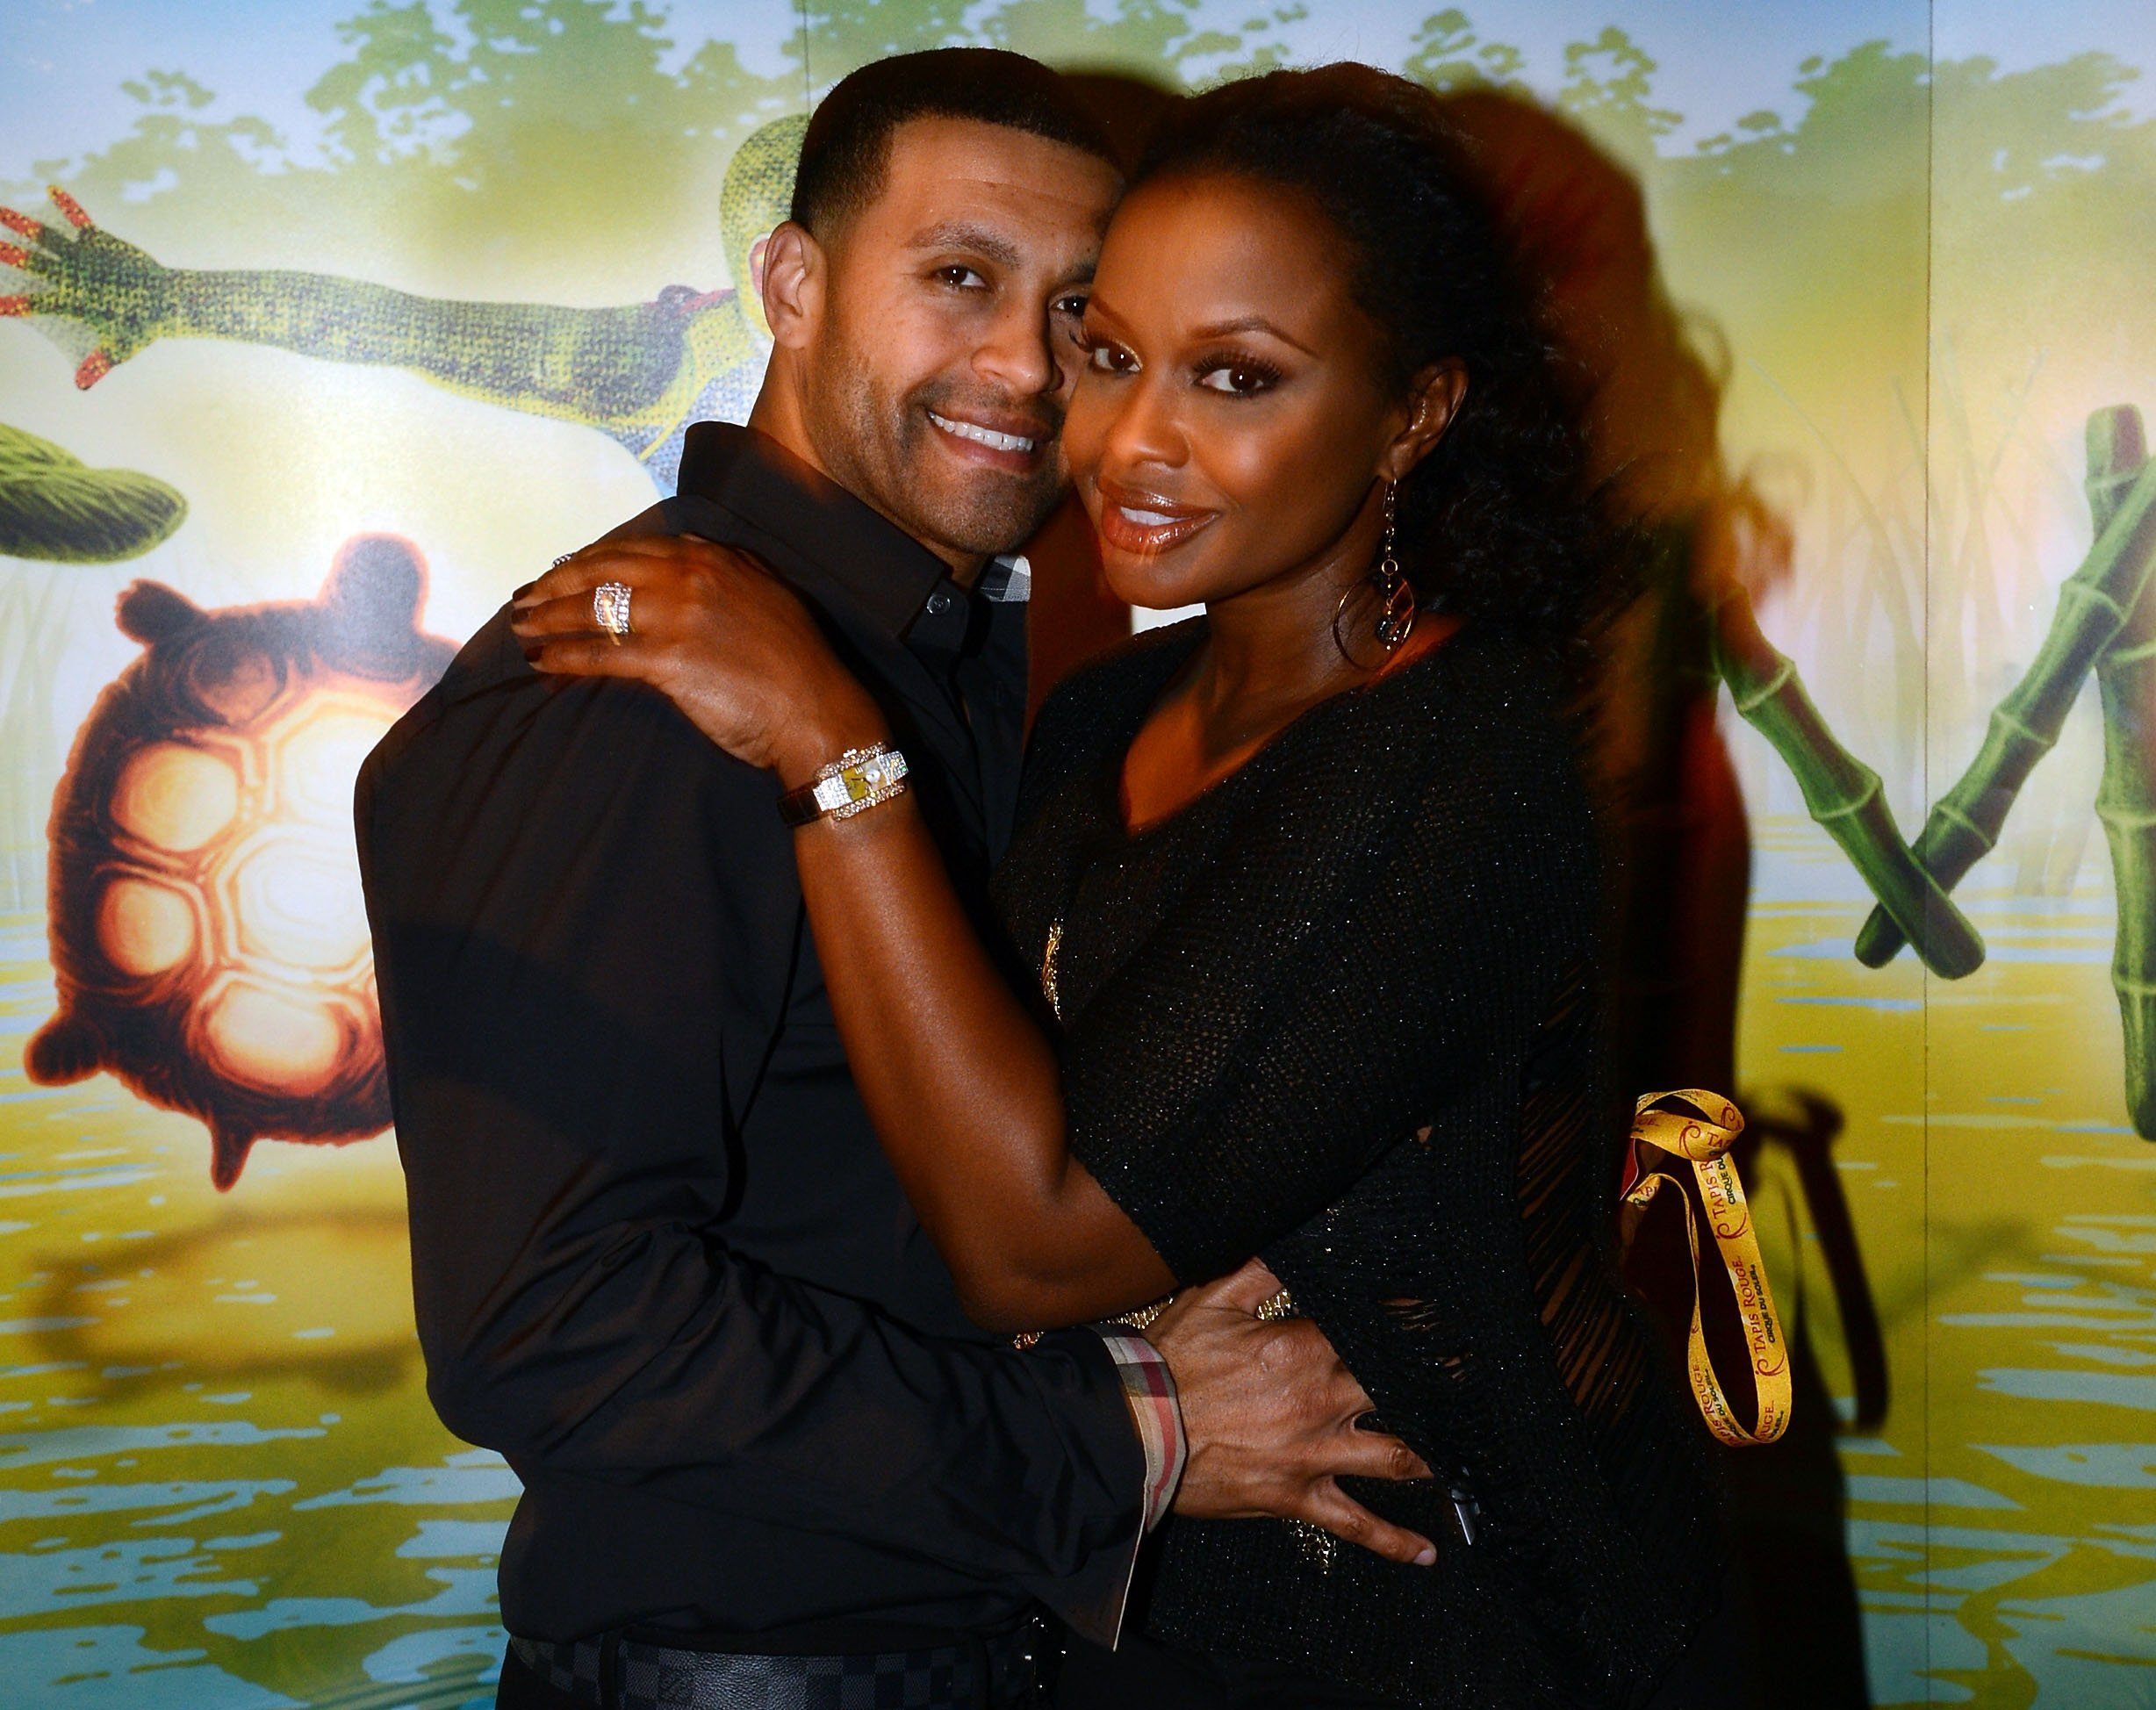 Phaedra Parks and Apollo Nida attend Cirque du Soleil TOTEM Premiere at Atlantic Station on October 26, 2012. | Photo: GettyImages